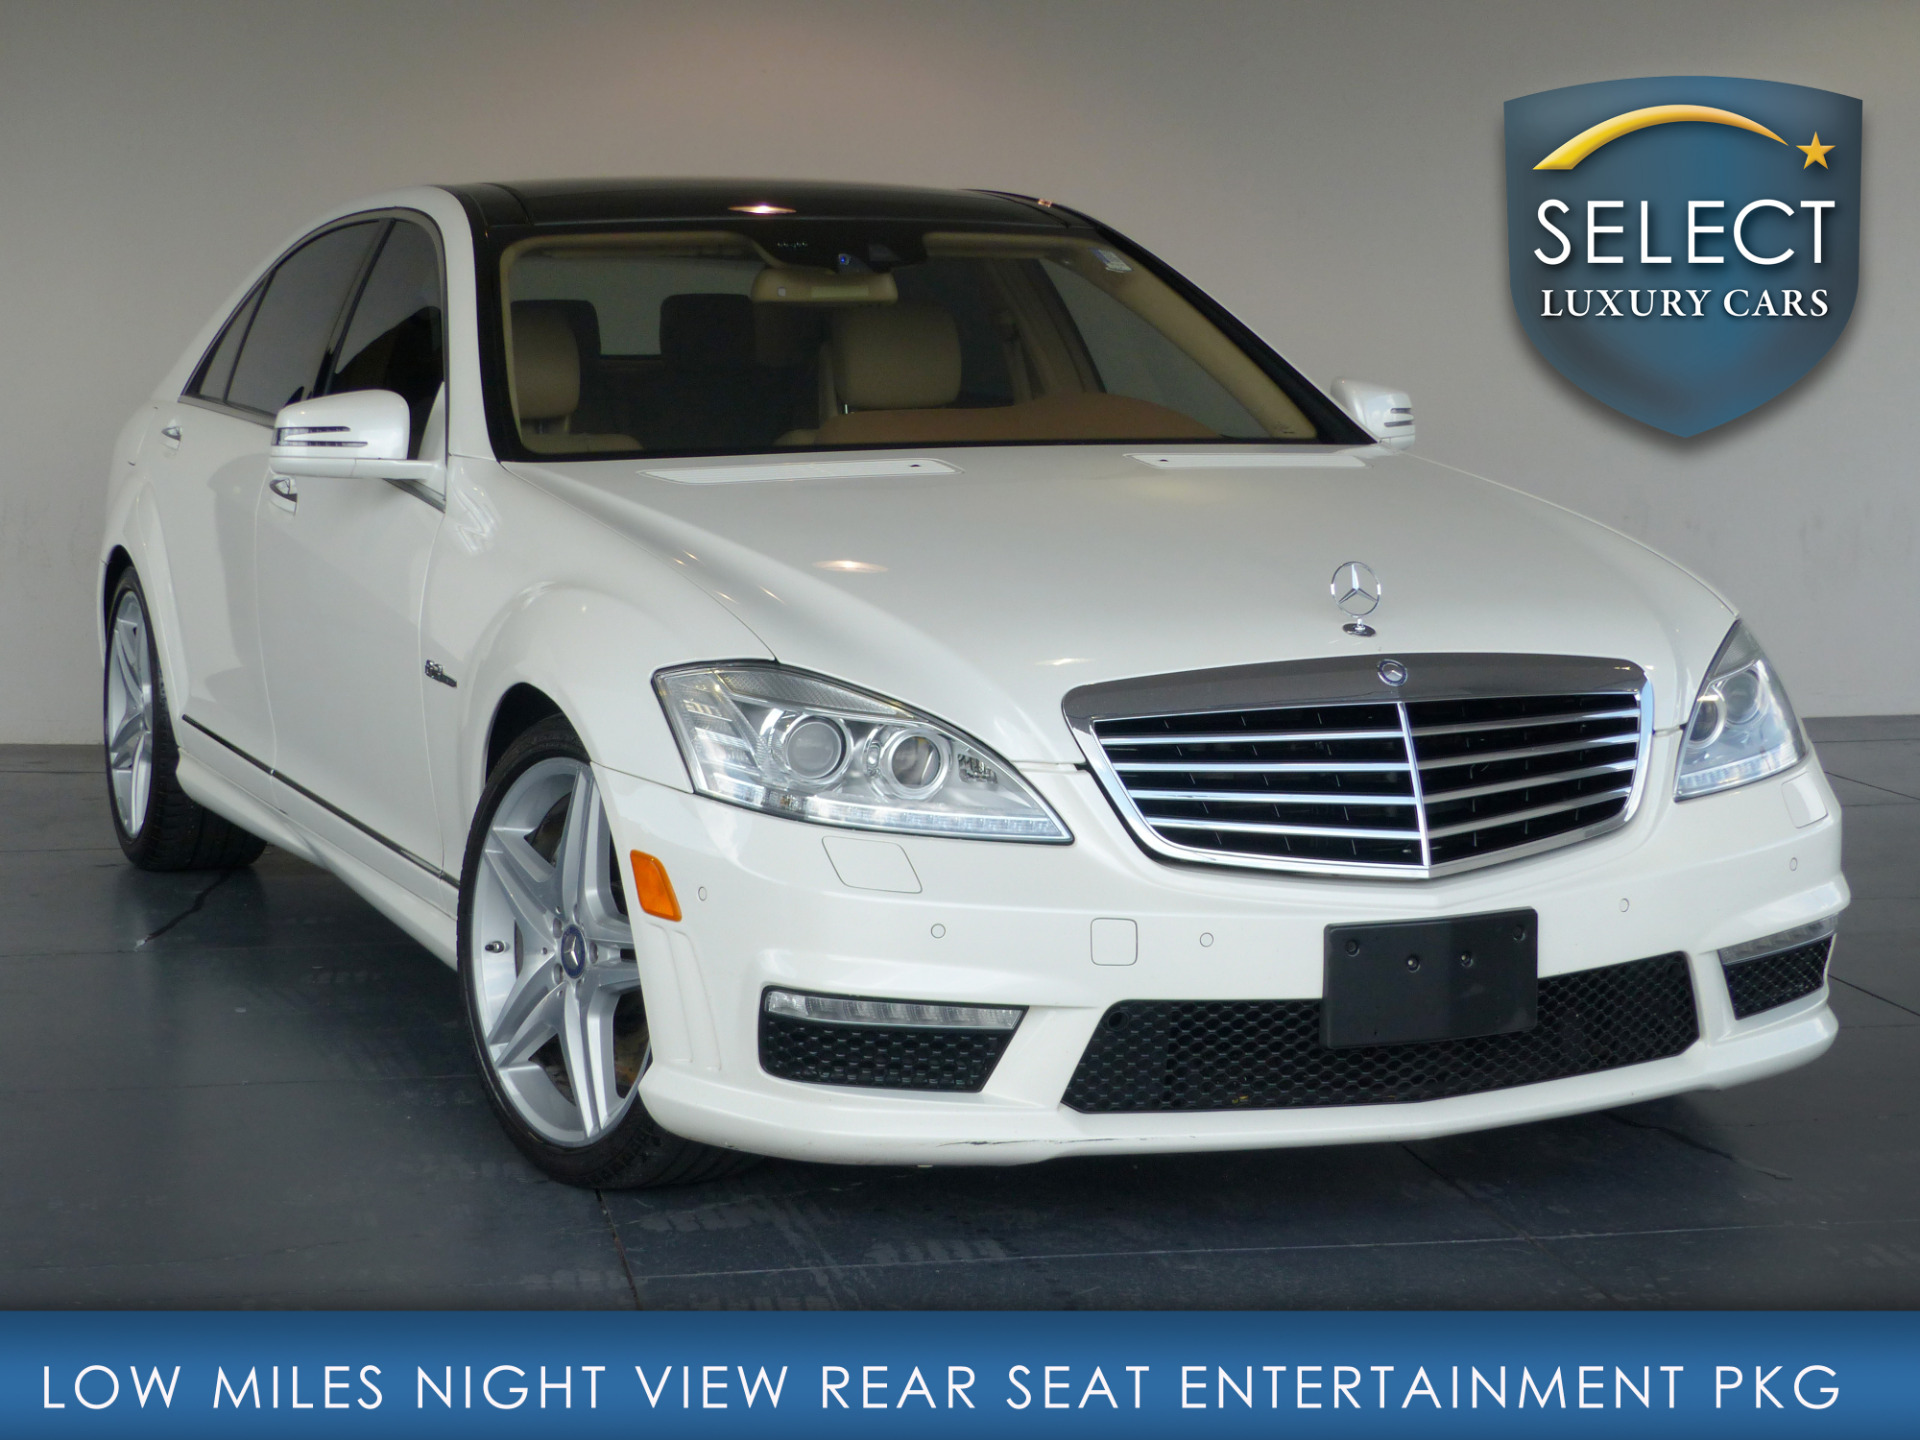 Used 2010 mercedes benz s class s63 amg marietta ga for 2010 mercedes benz s63 amg